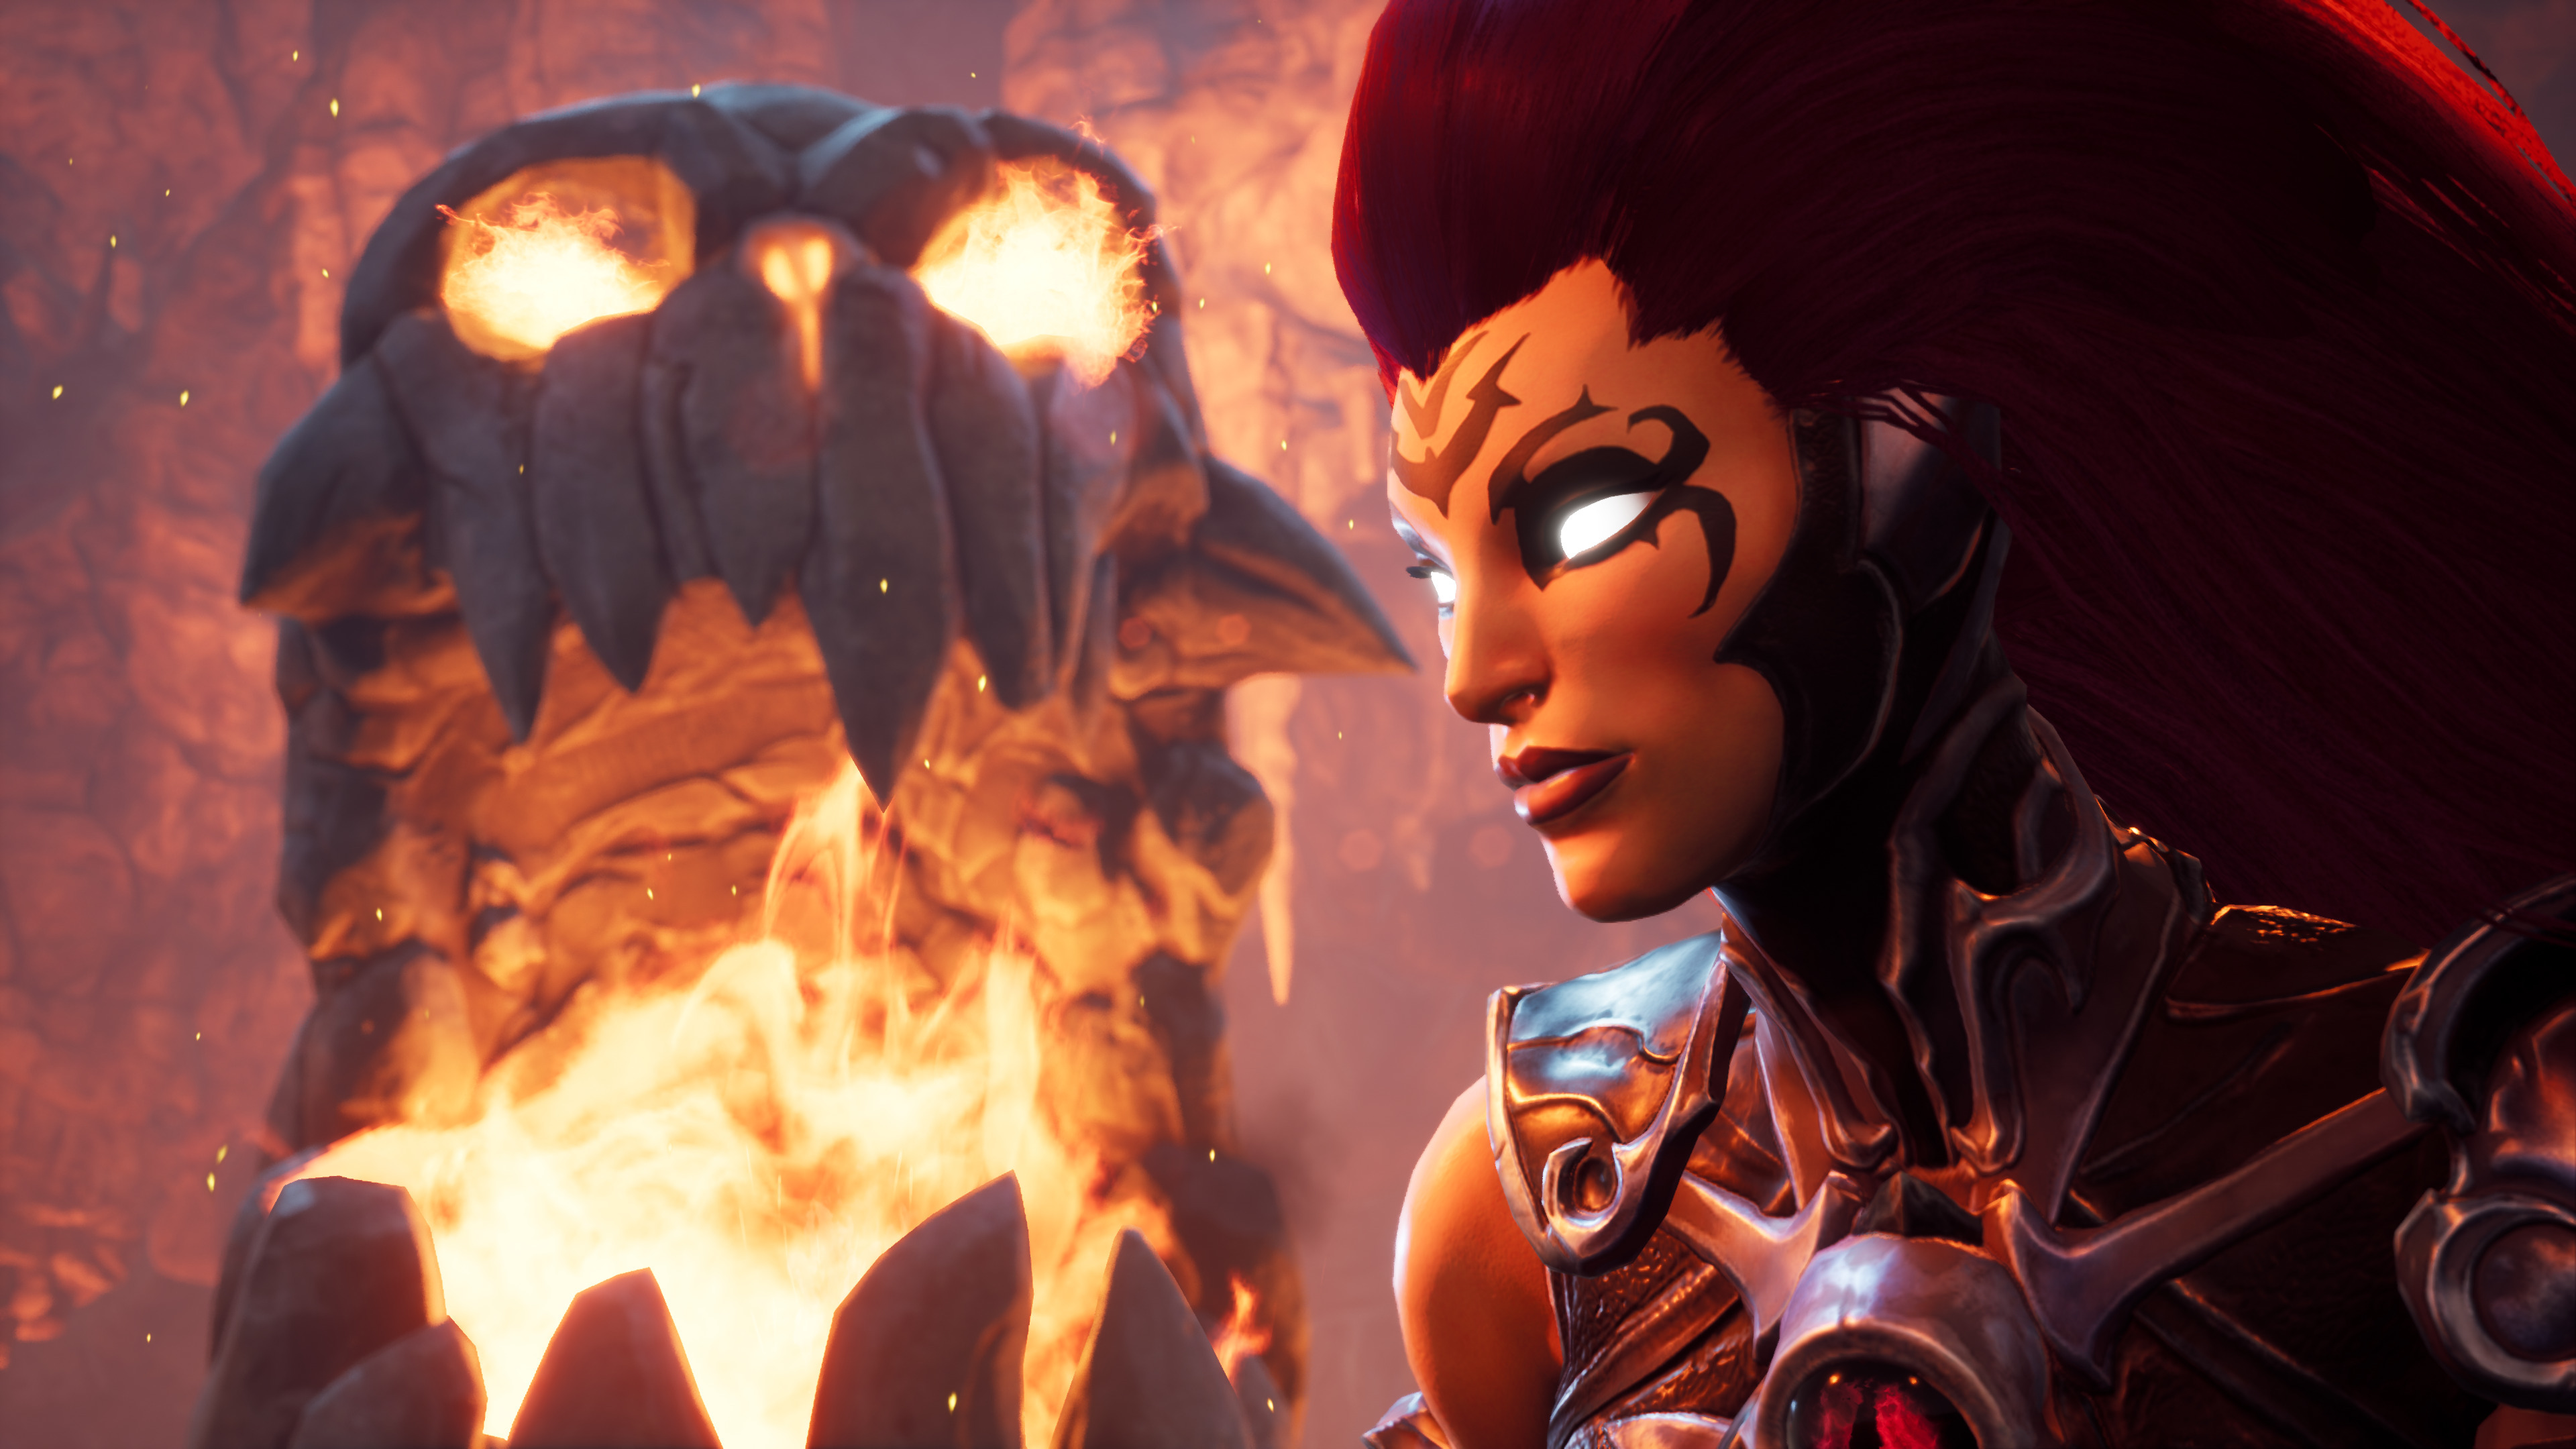 darksiders 3 4k 1543621096 - Darksiders 3 4k - hd-wallpapers, games wallpapers, darksiders 3 wallpapers, 4k-wallpapers, 2018 games wallpapers